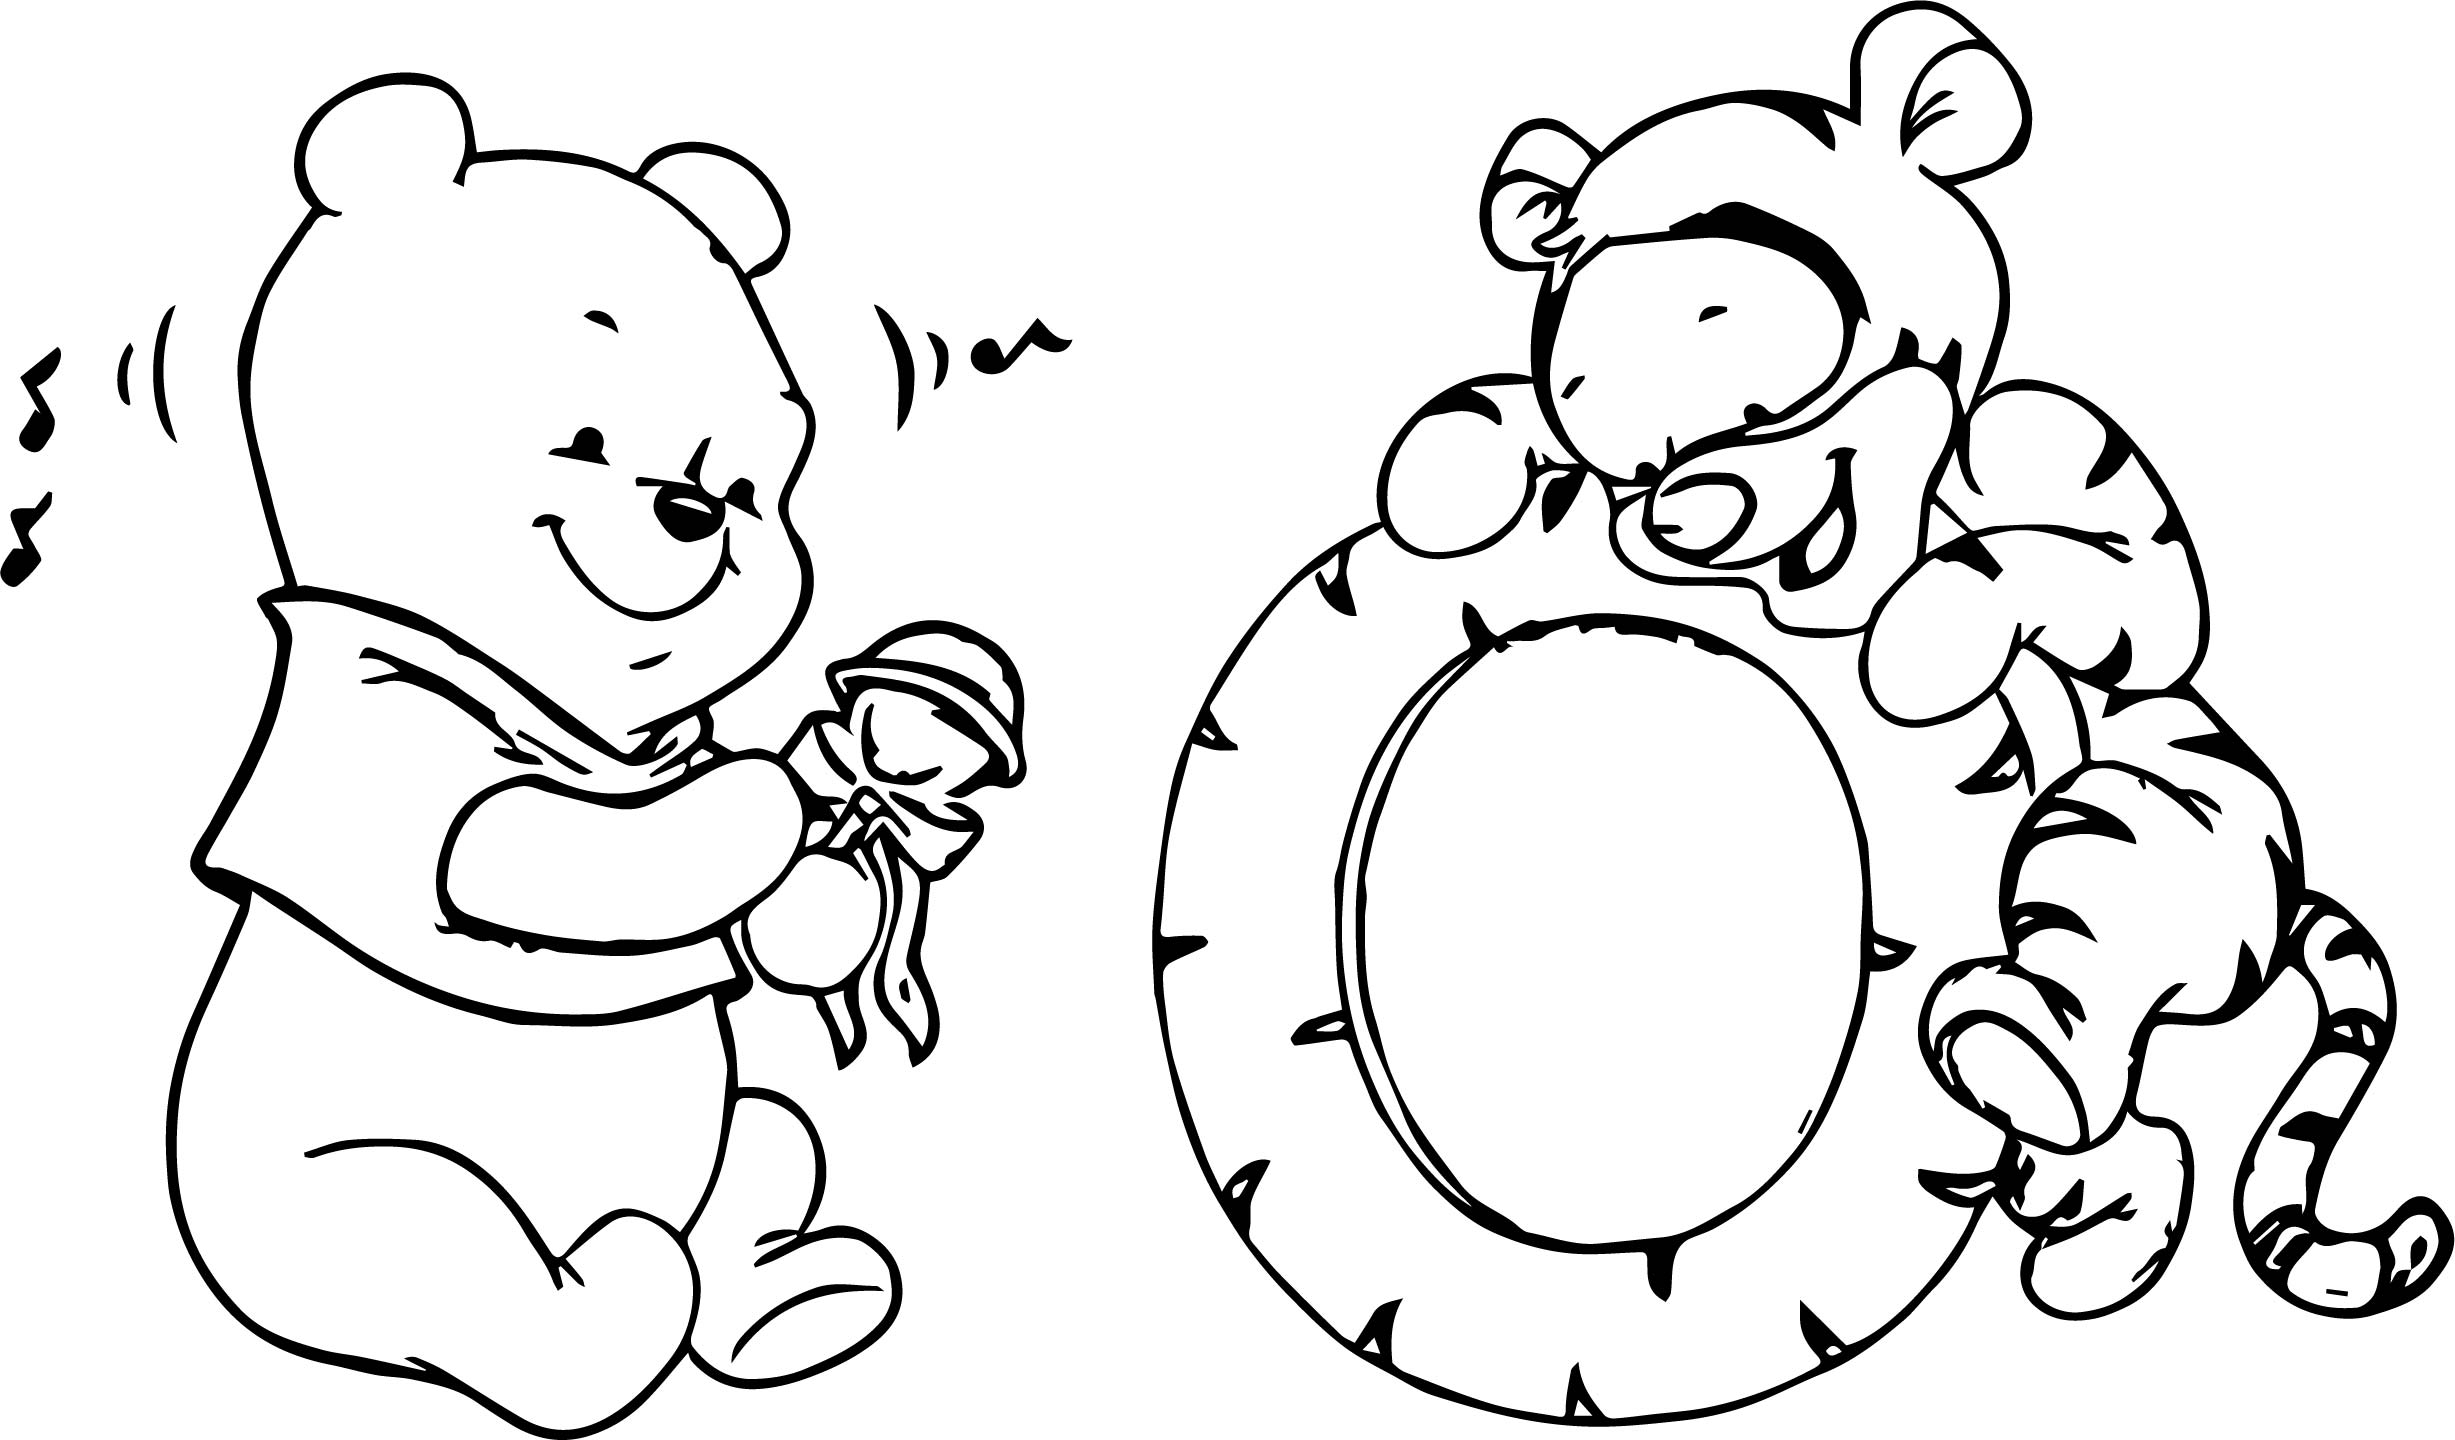 Baby tigger winnie the pooh music coloring page for Baby tigger coloring pages